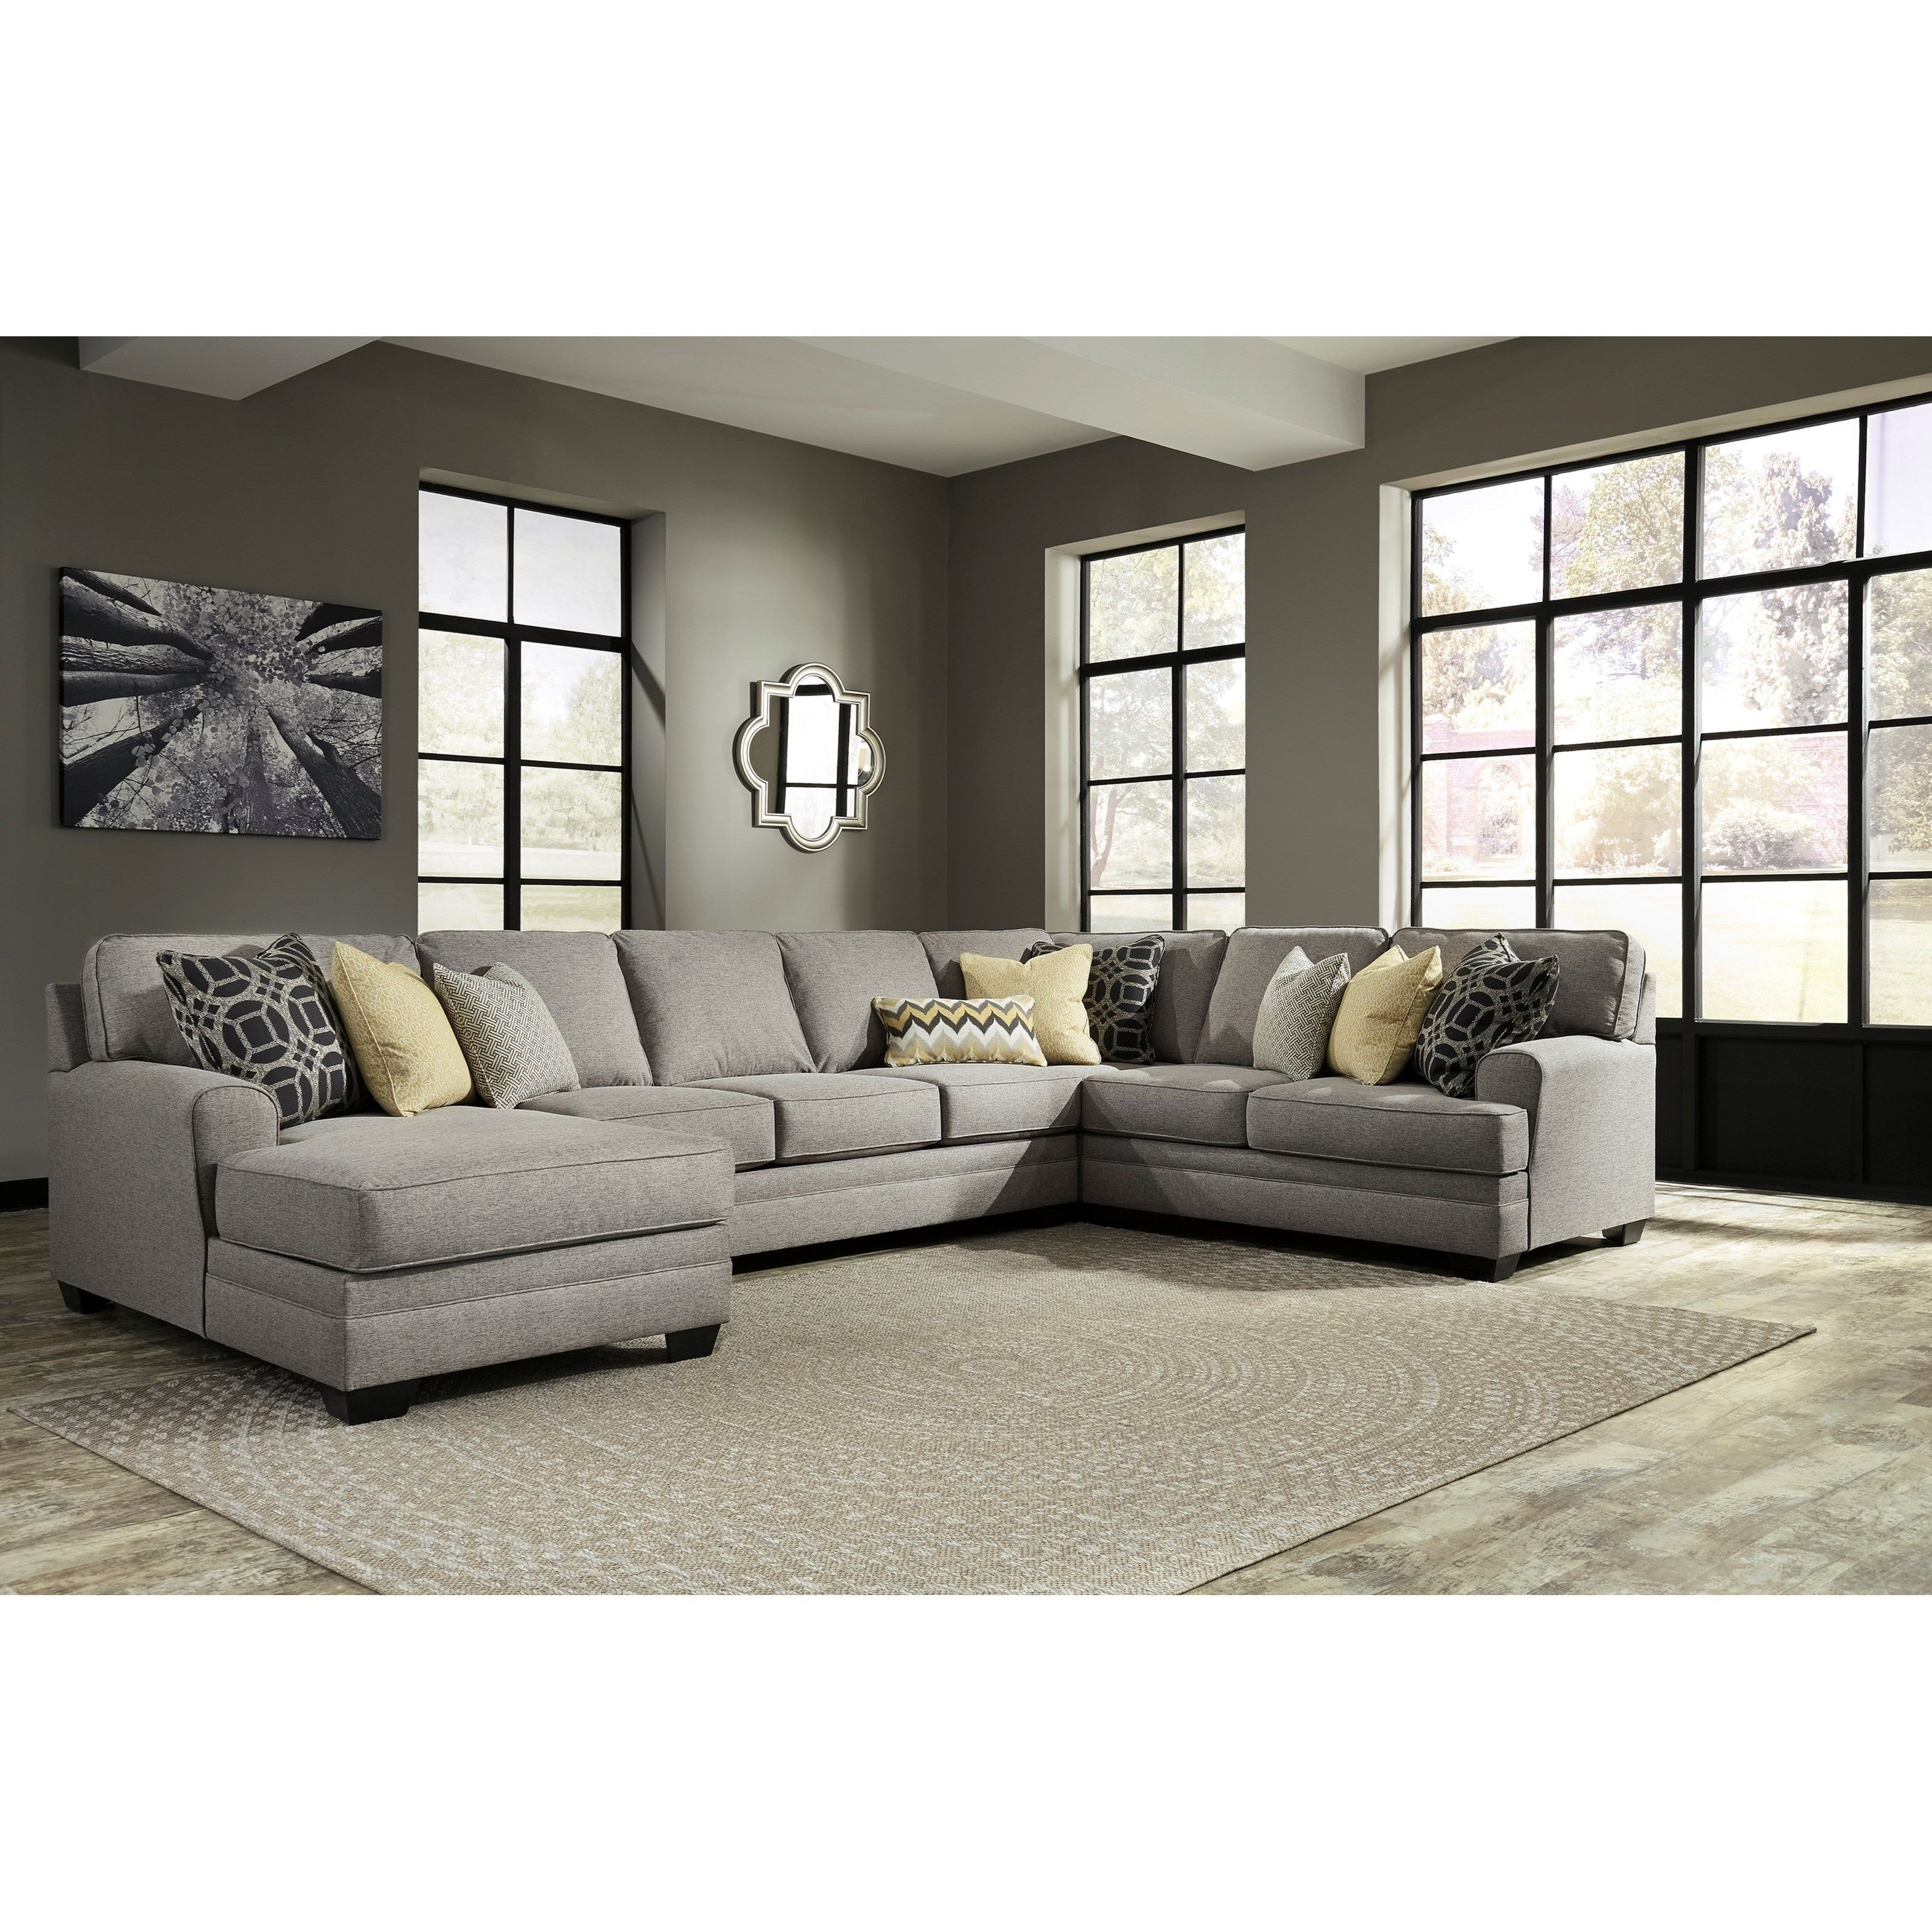 2017 Eau Claire Wi Sectional Sofas Intended For Contemporary 4 Piece Sectional With Chaise & Armless Sofa (View 12 of 15)